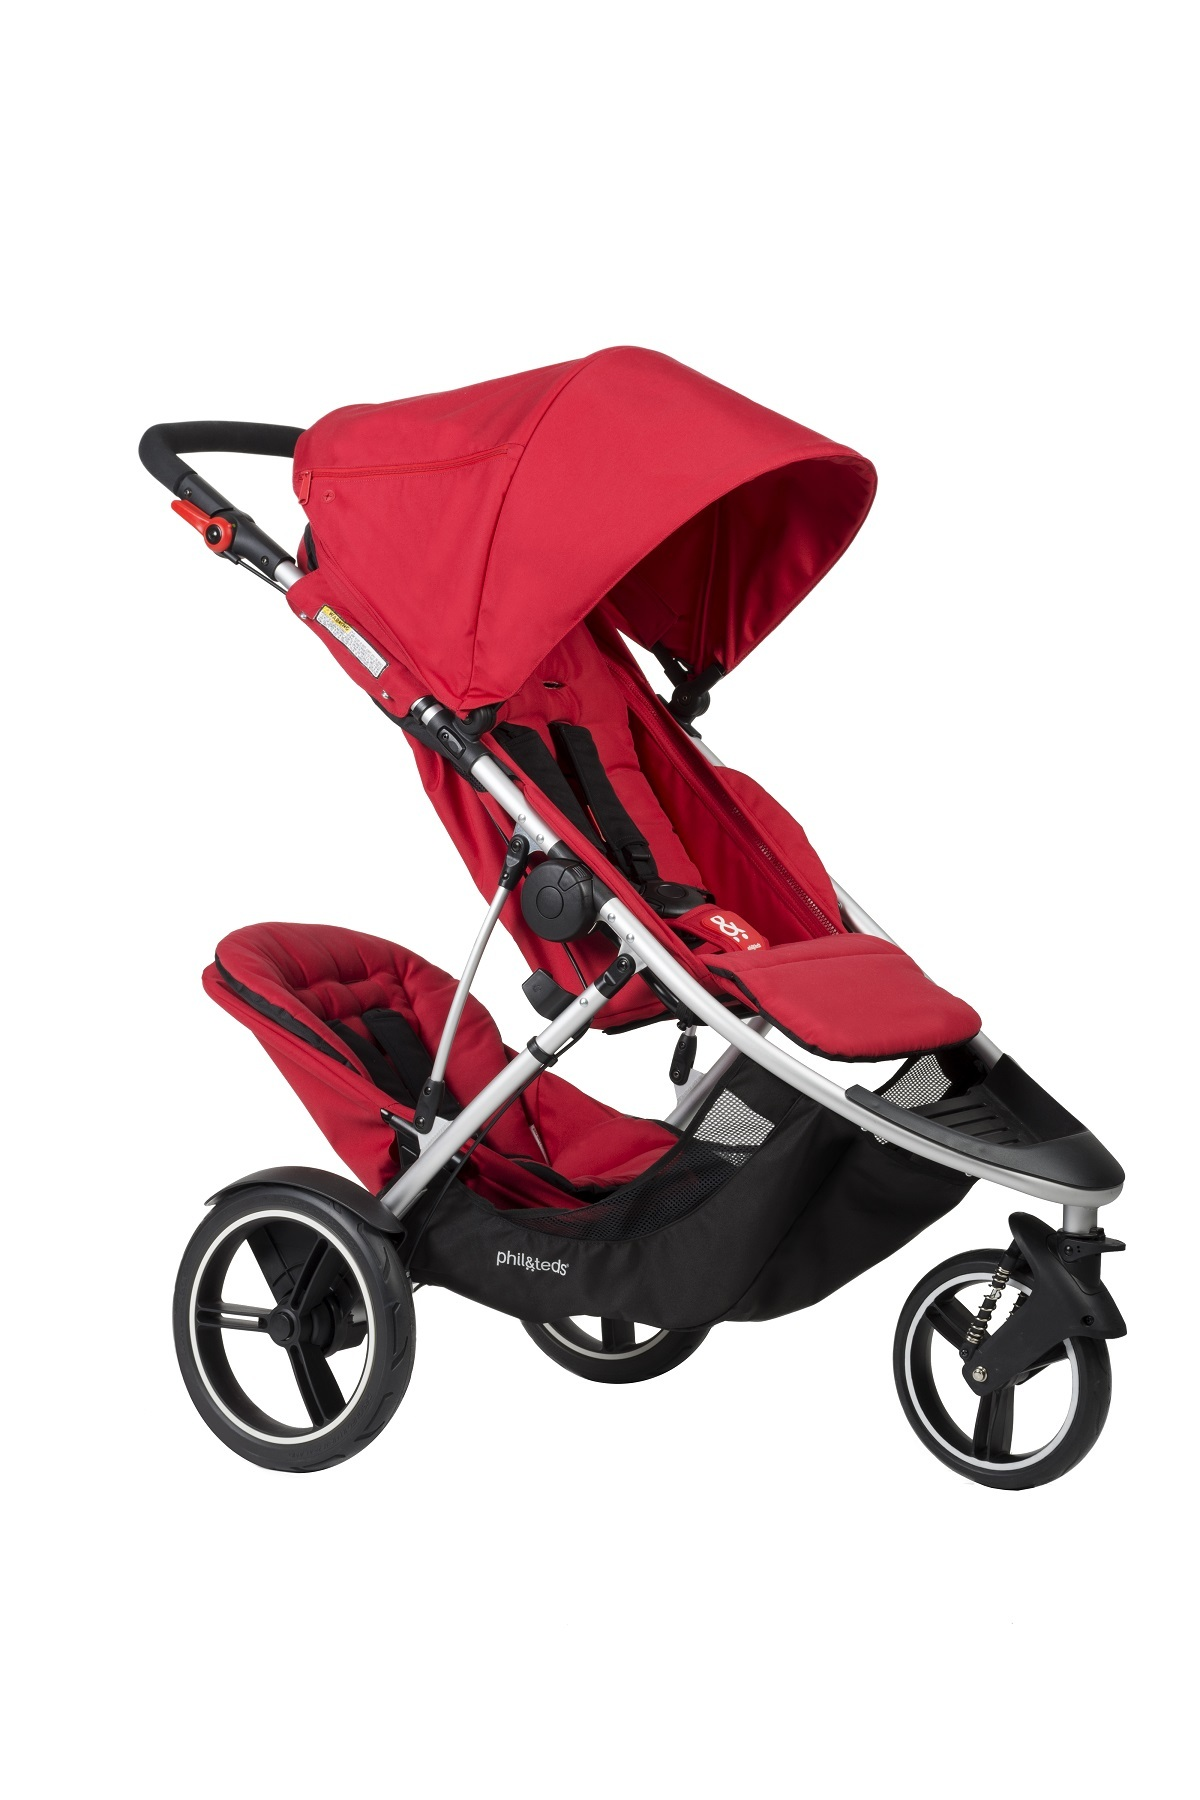 phil&teds Dash buggy Red フィルアンドテッズ ダッシュ